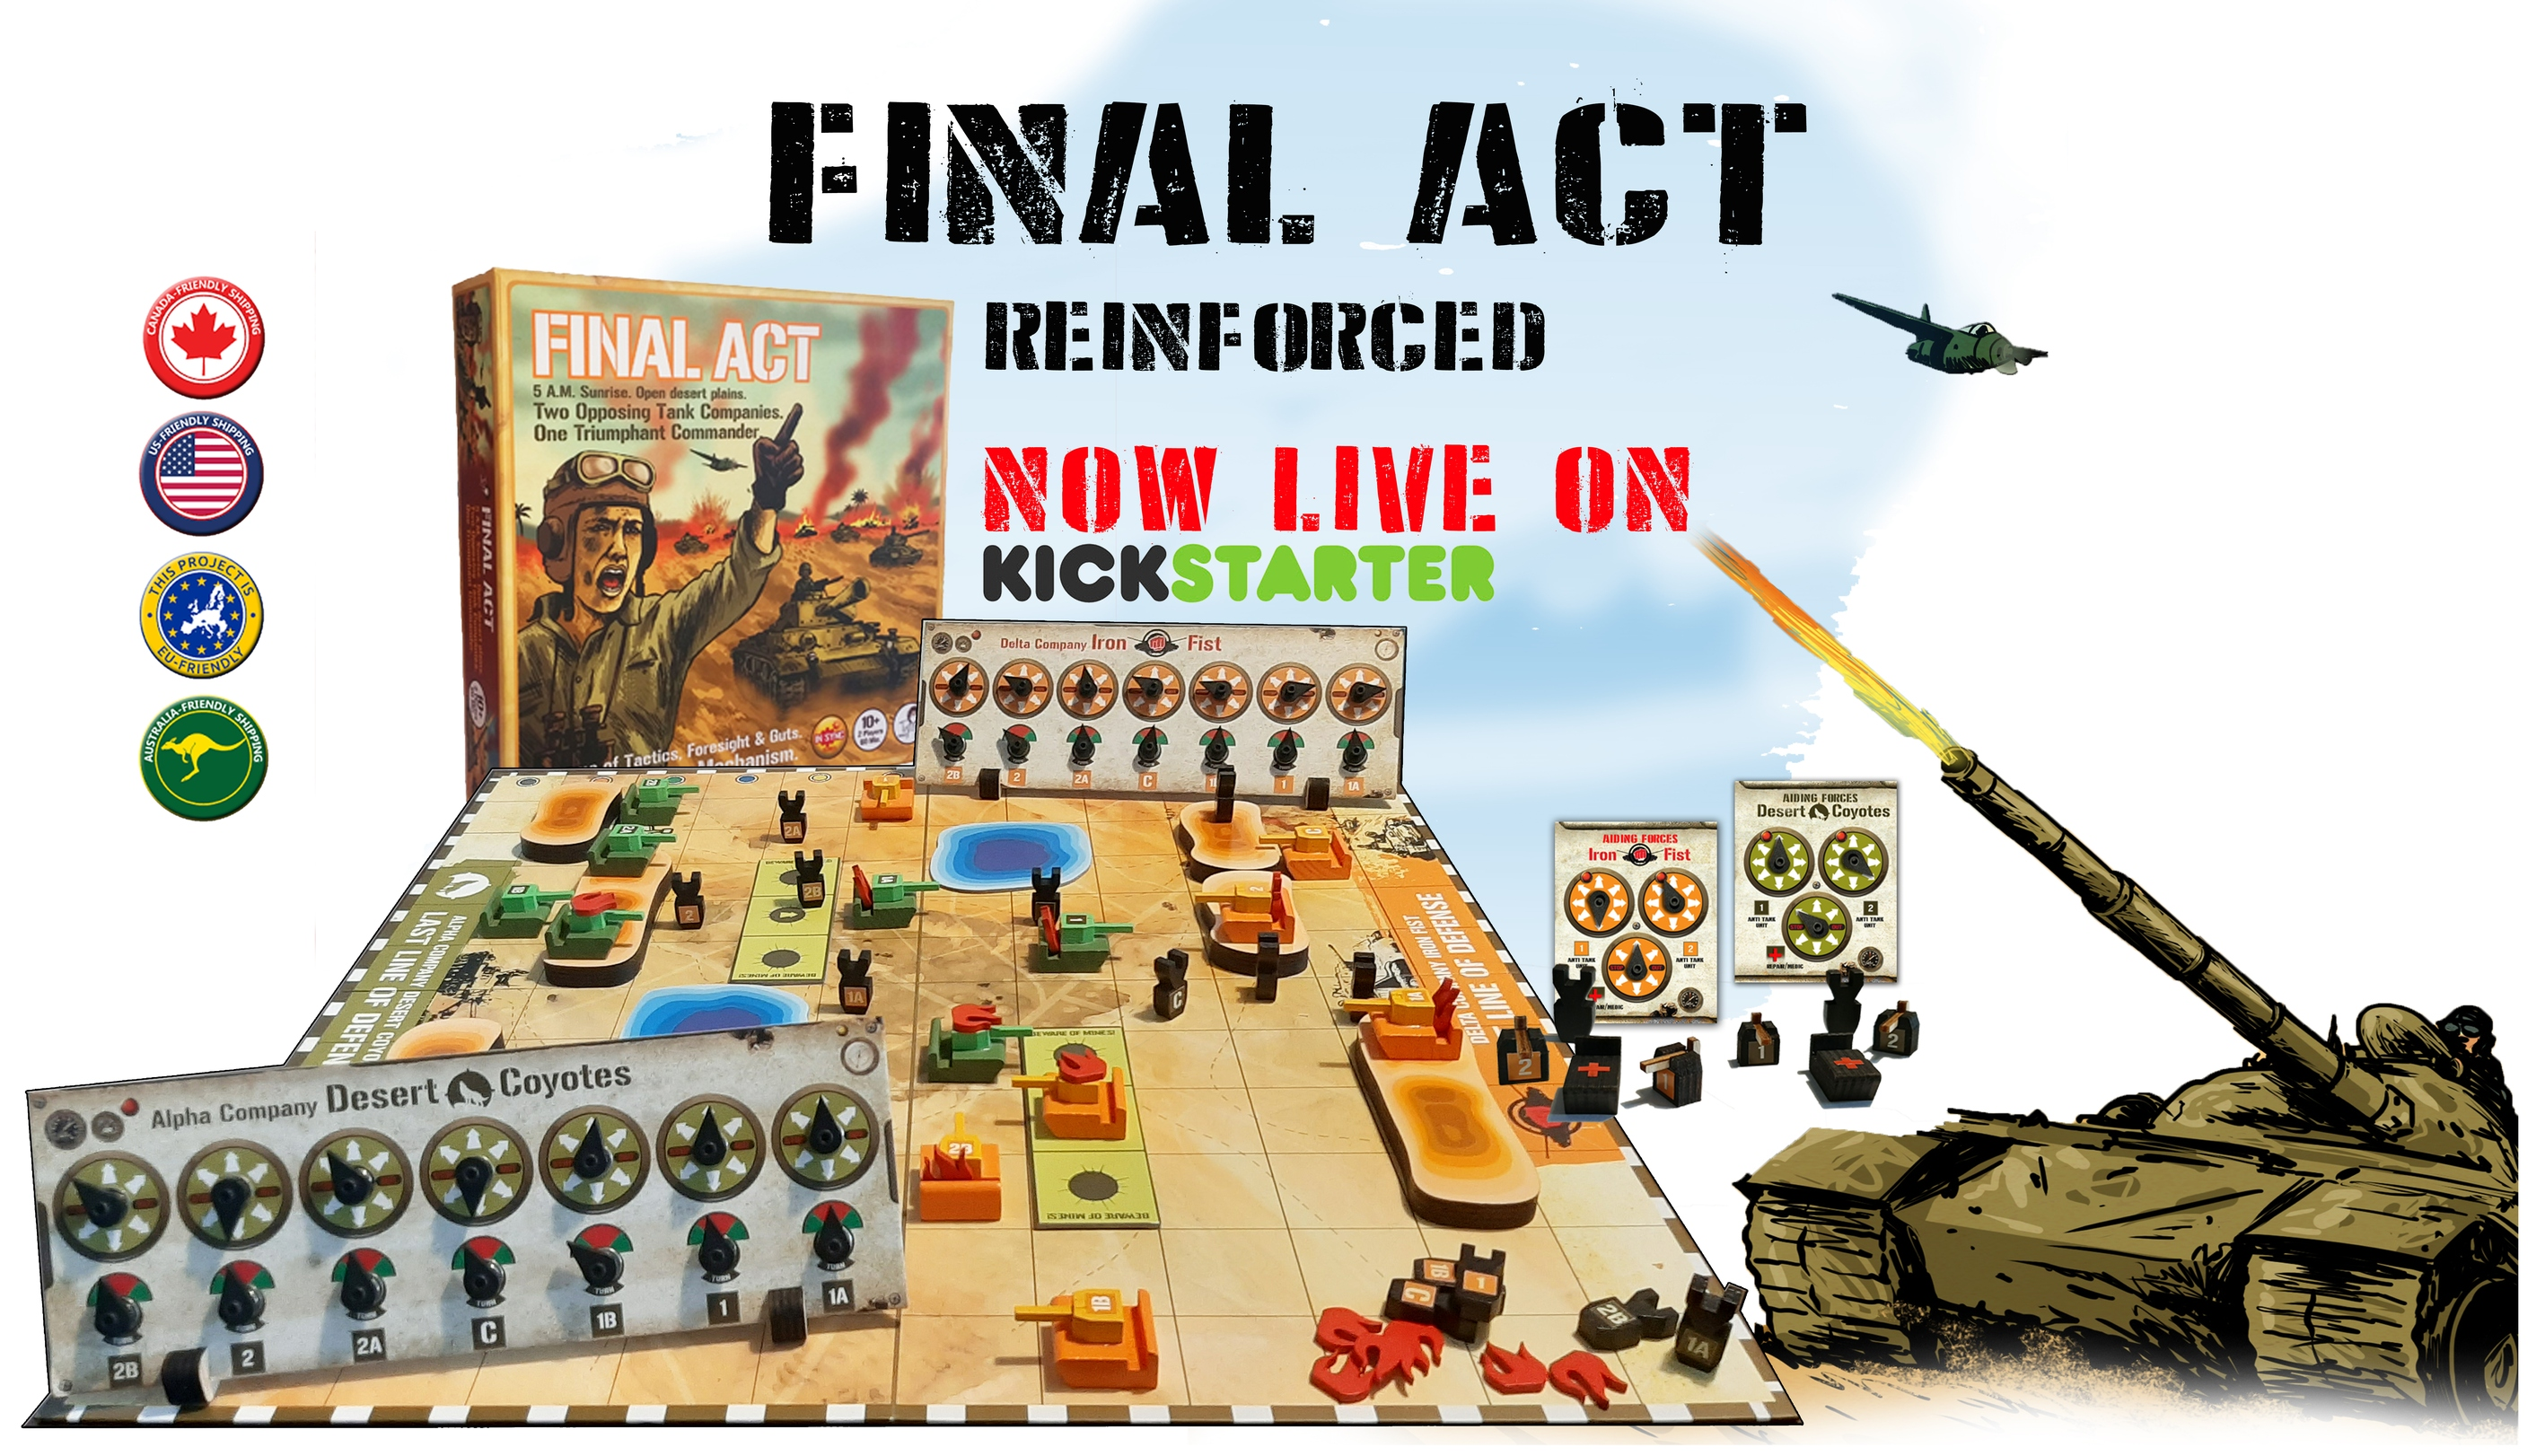 Final Act REINFORCED on Kickstarter